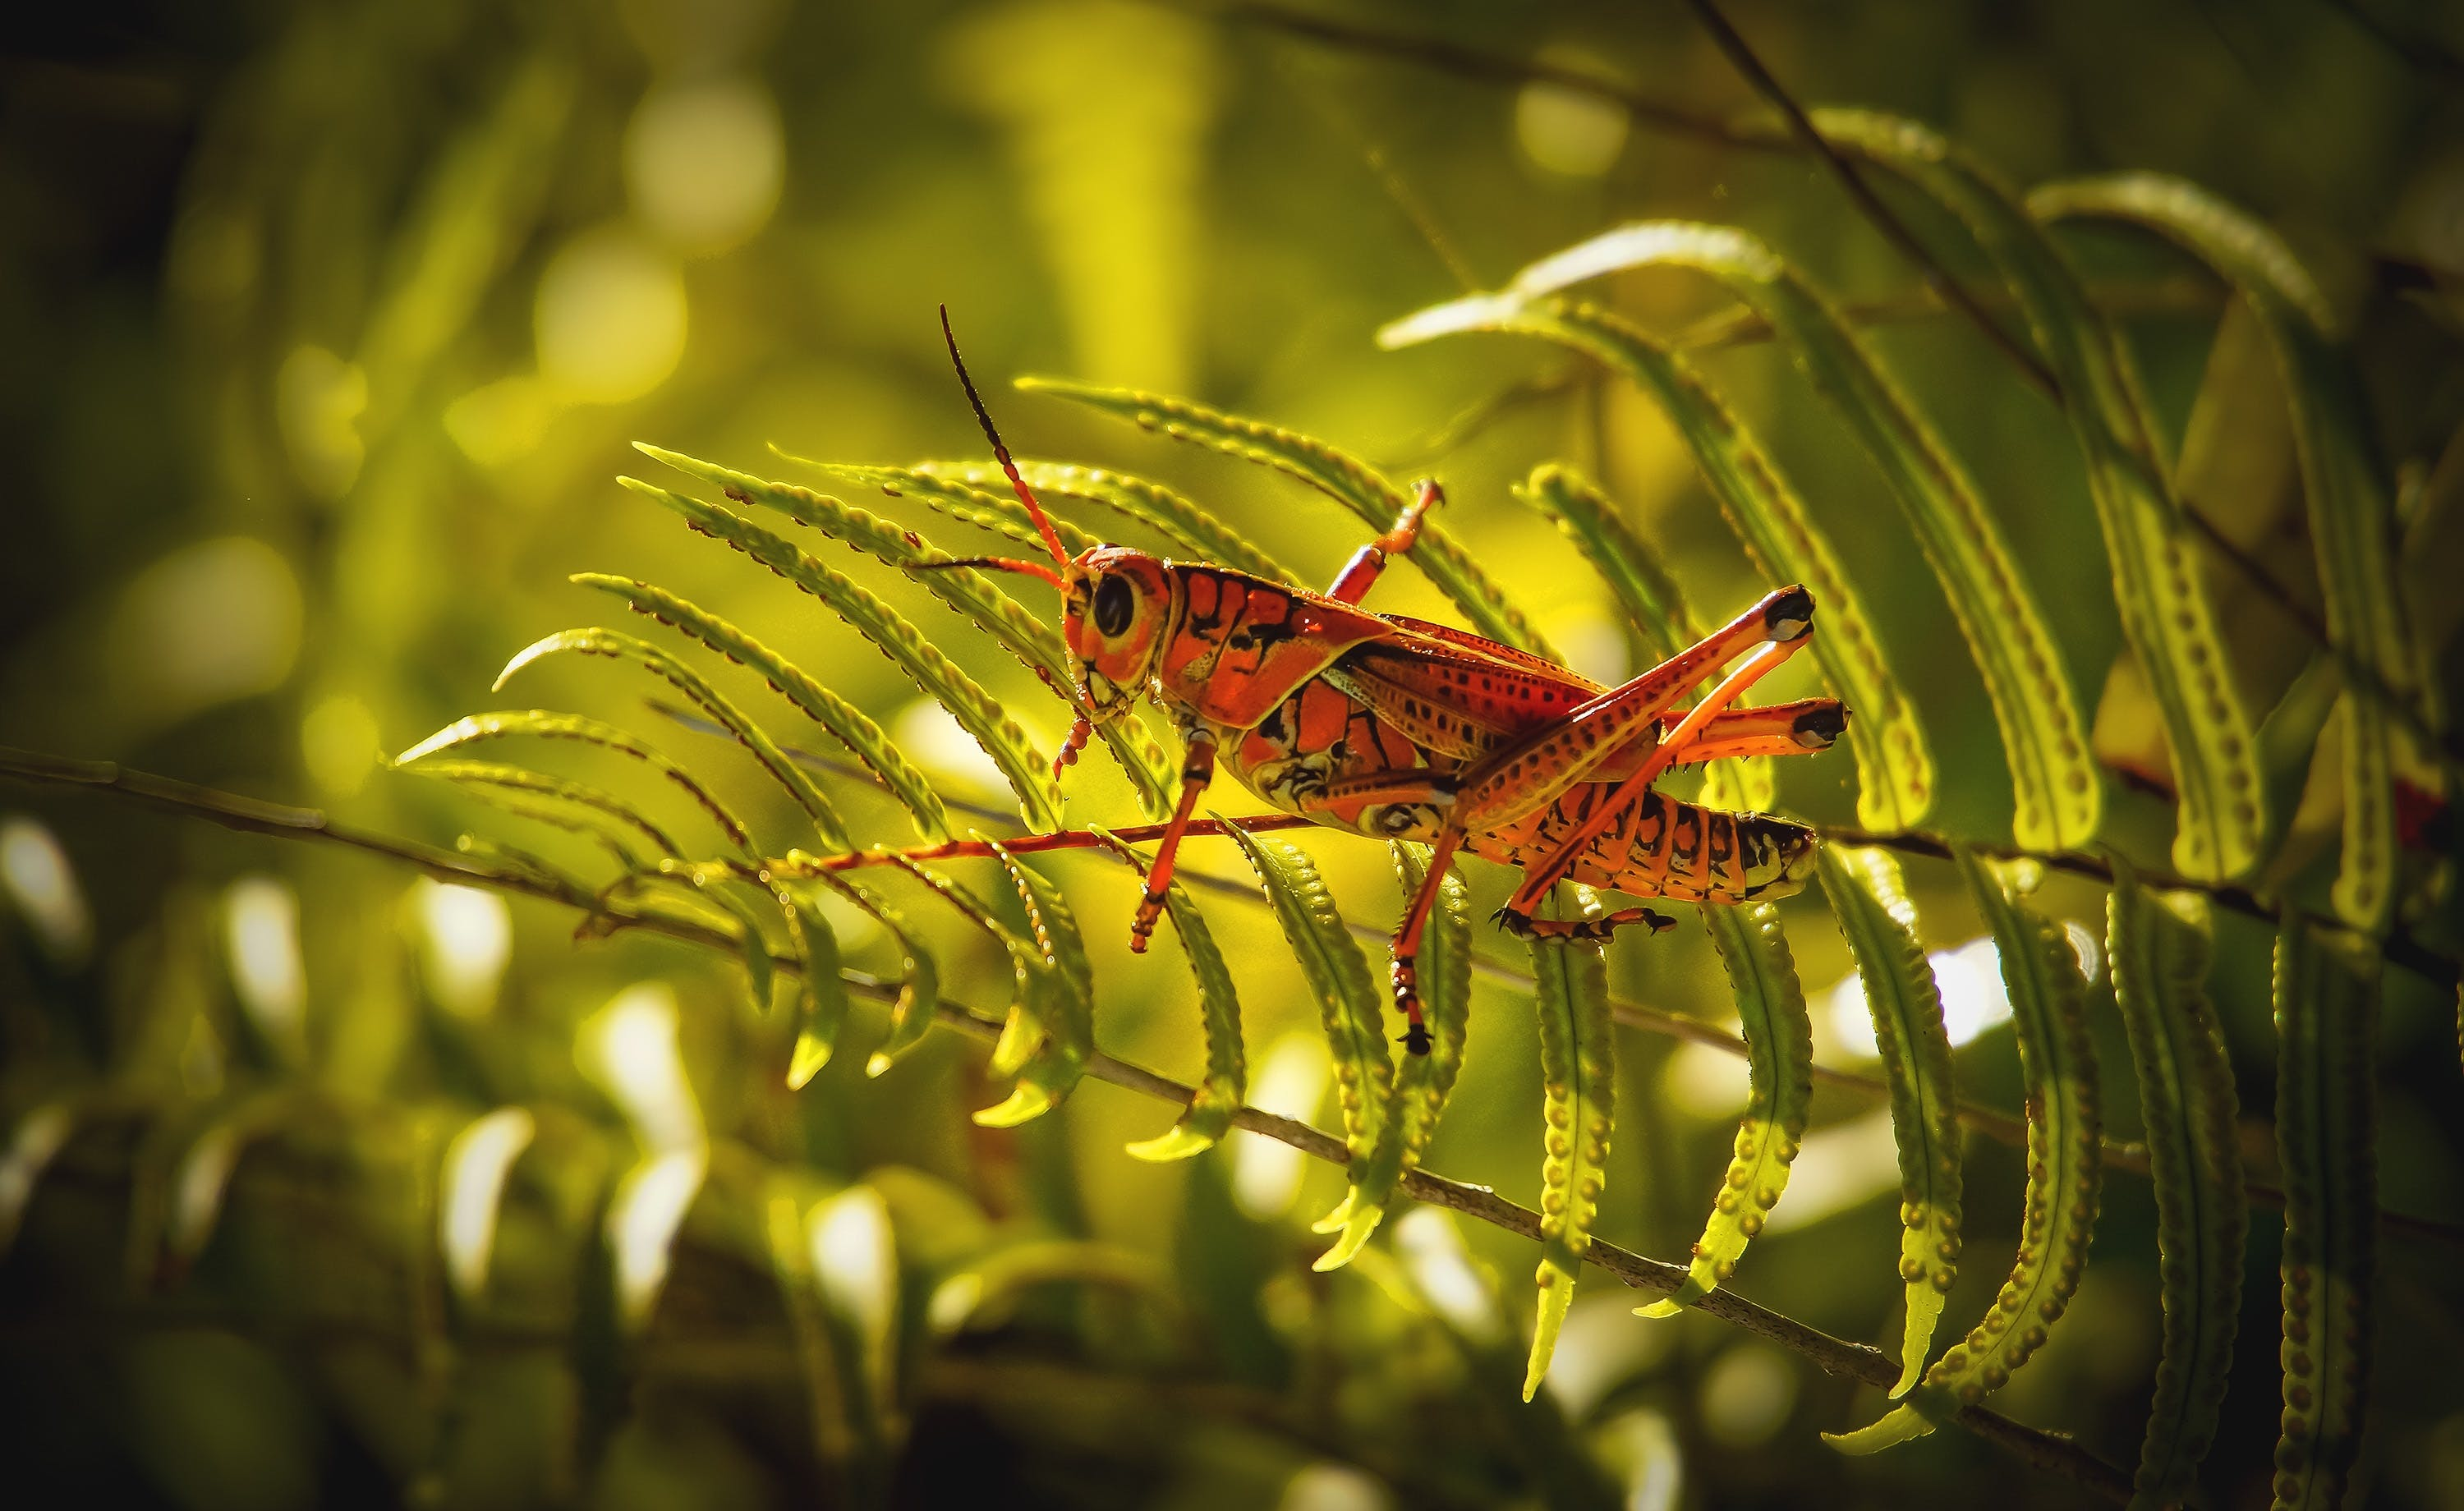 Close-Up Photo of Grasshopper Perched On Fern Plant